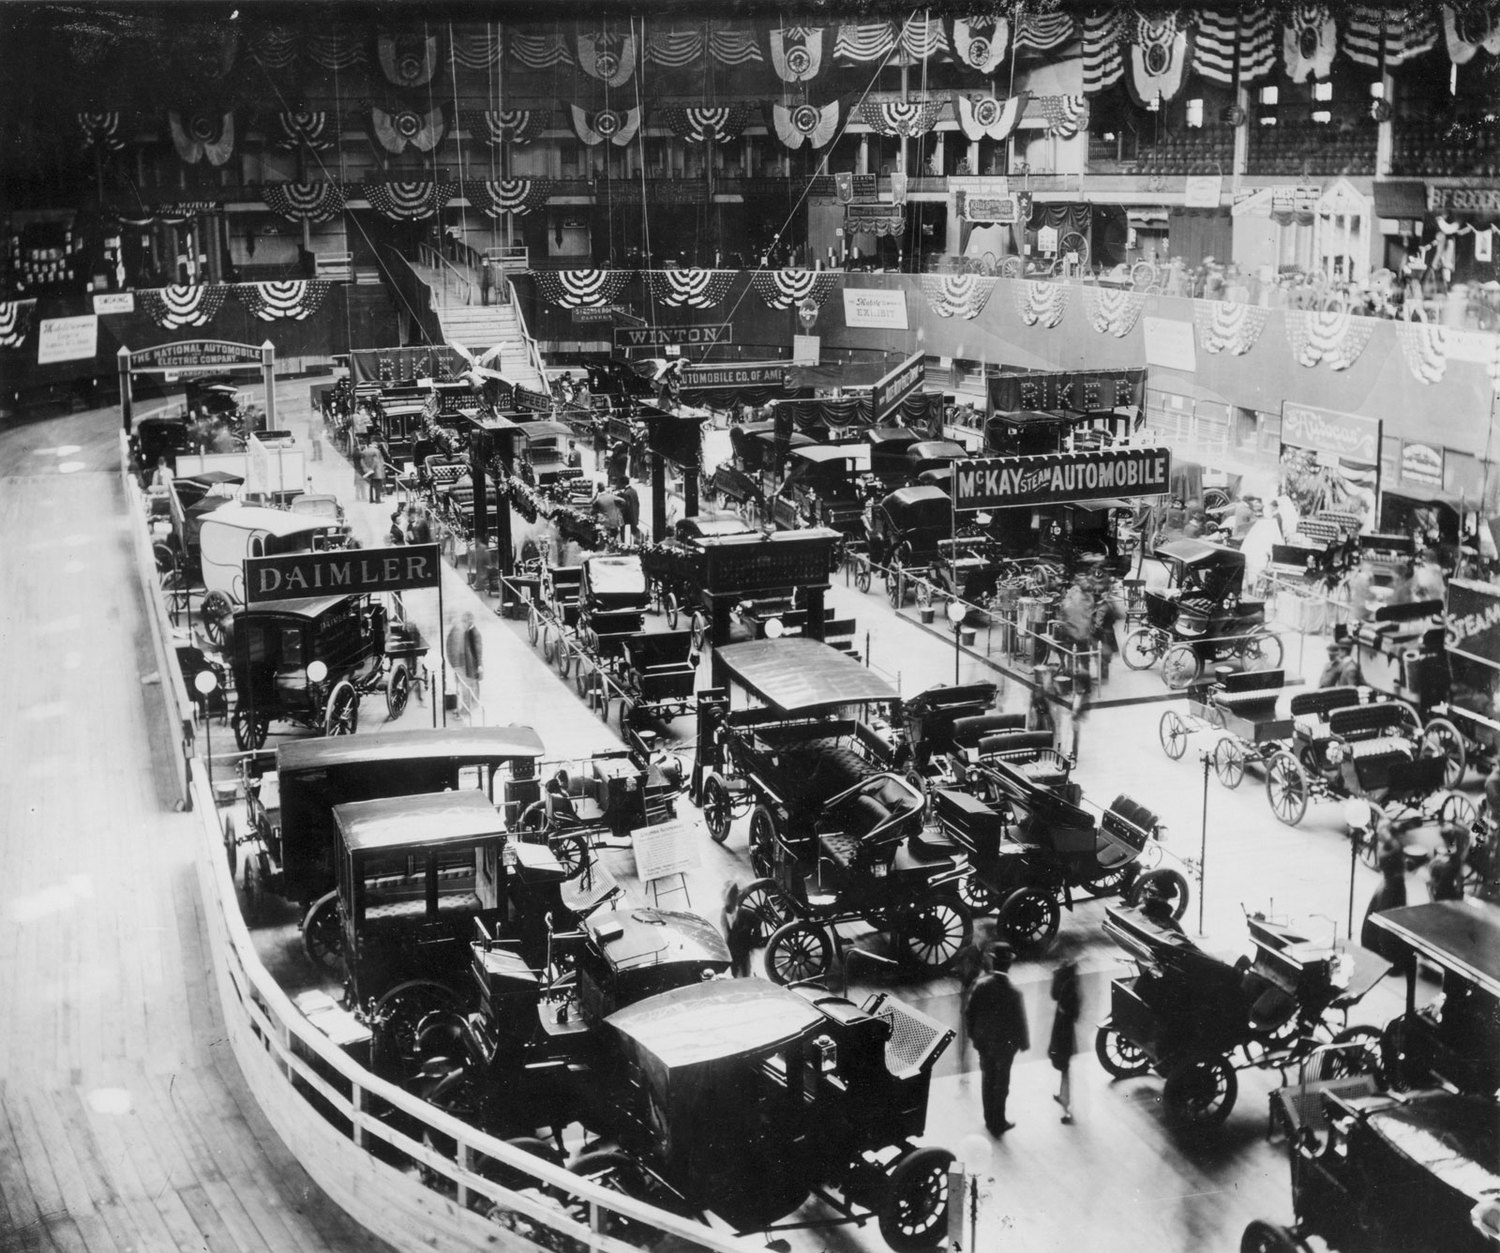 Madison Square Garden: 1st National Auto Show, 1900